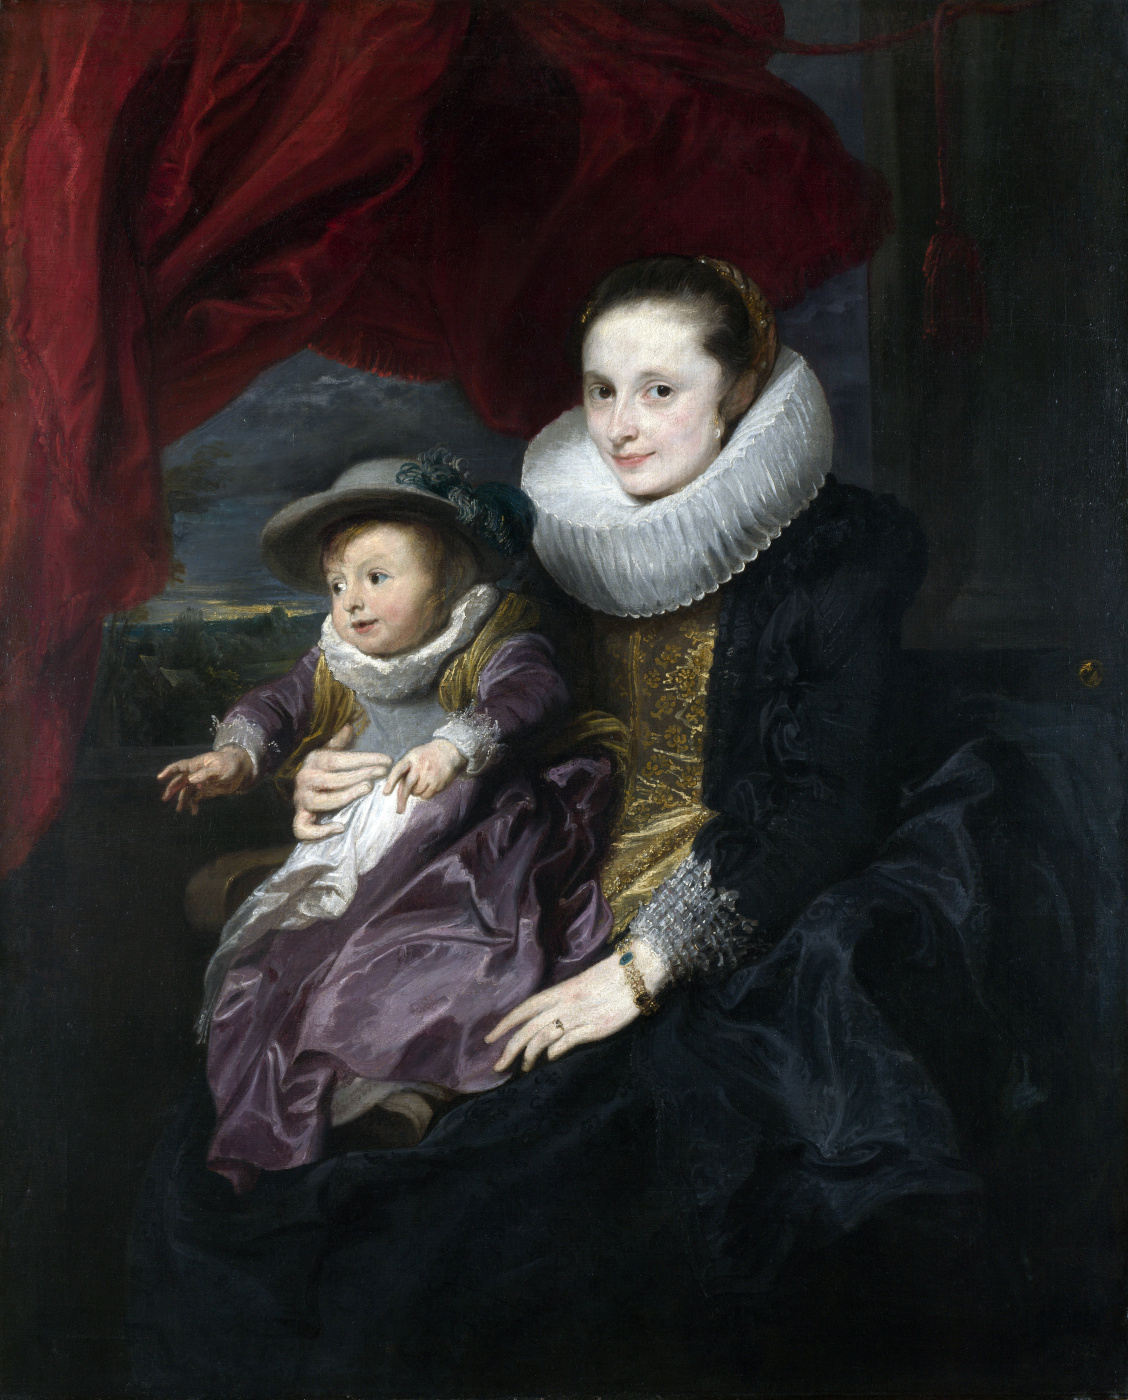 Anthony van Dyck. Portrait of a woman with a child